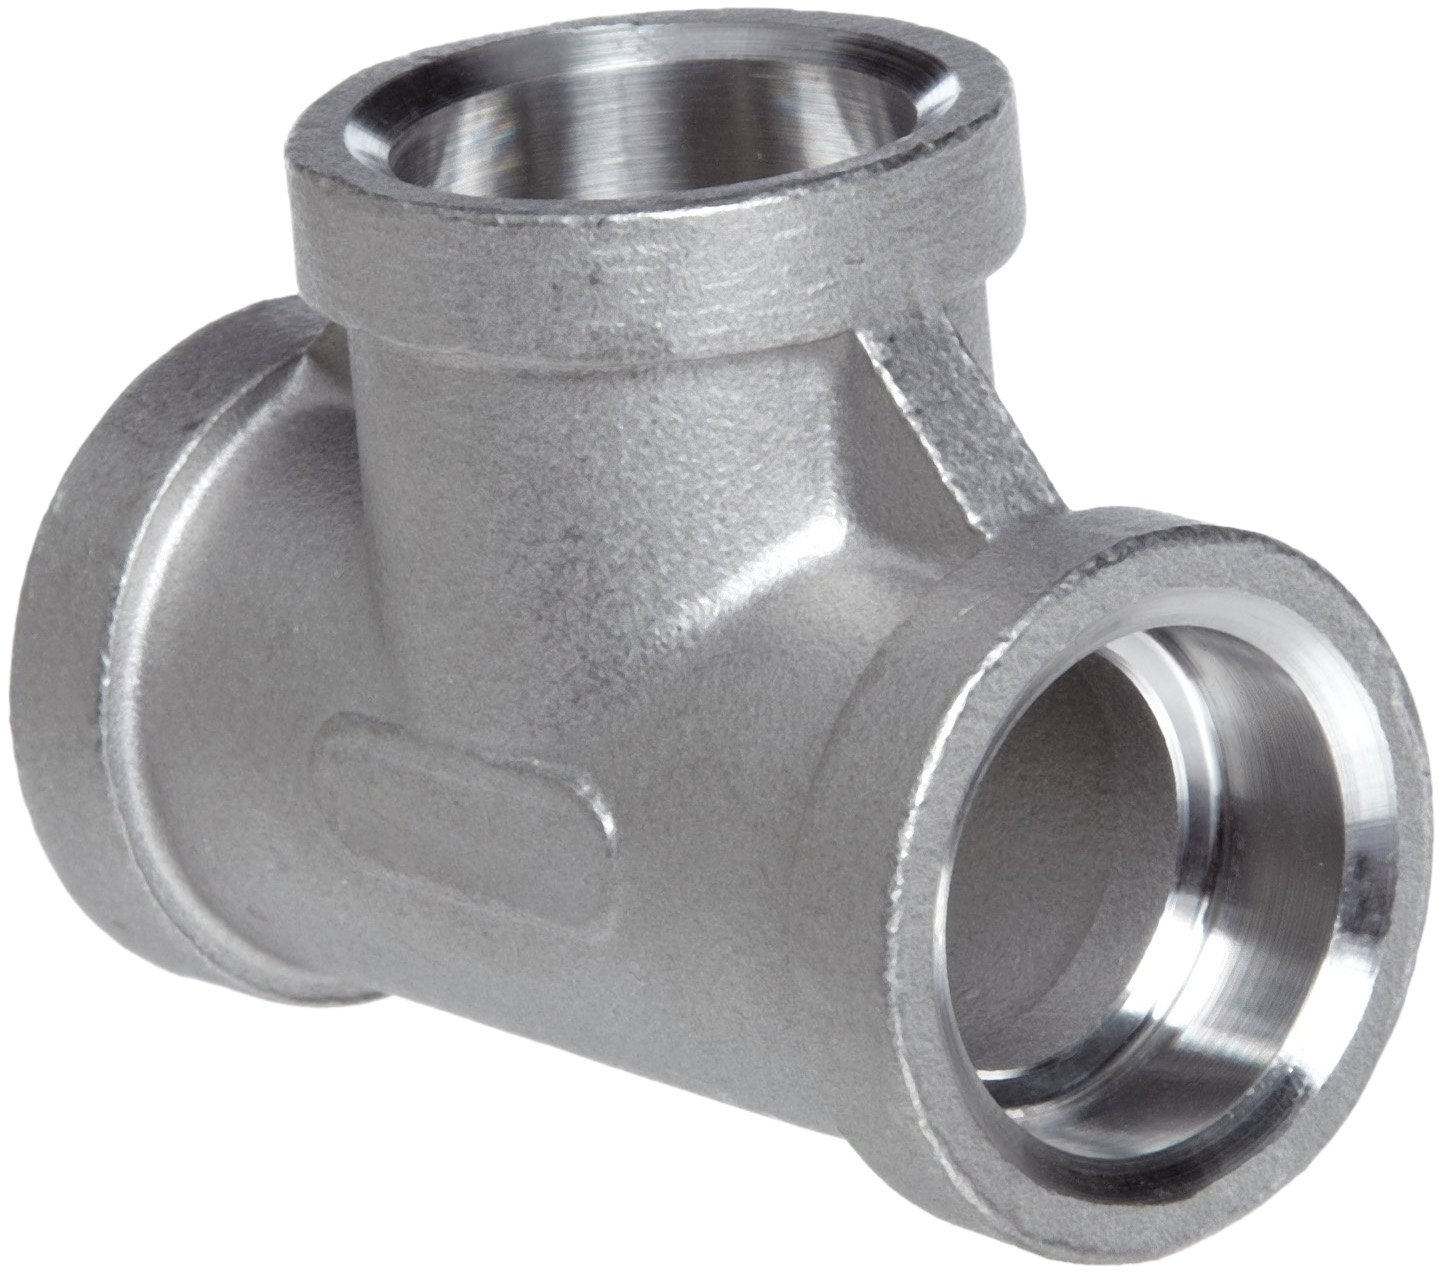 1//2 Female Stainless Steel 316 Cast Pipe Fitting MSS SP-114 Tee Socket Weld